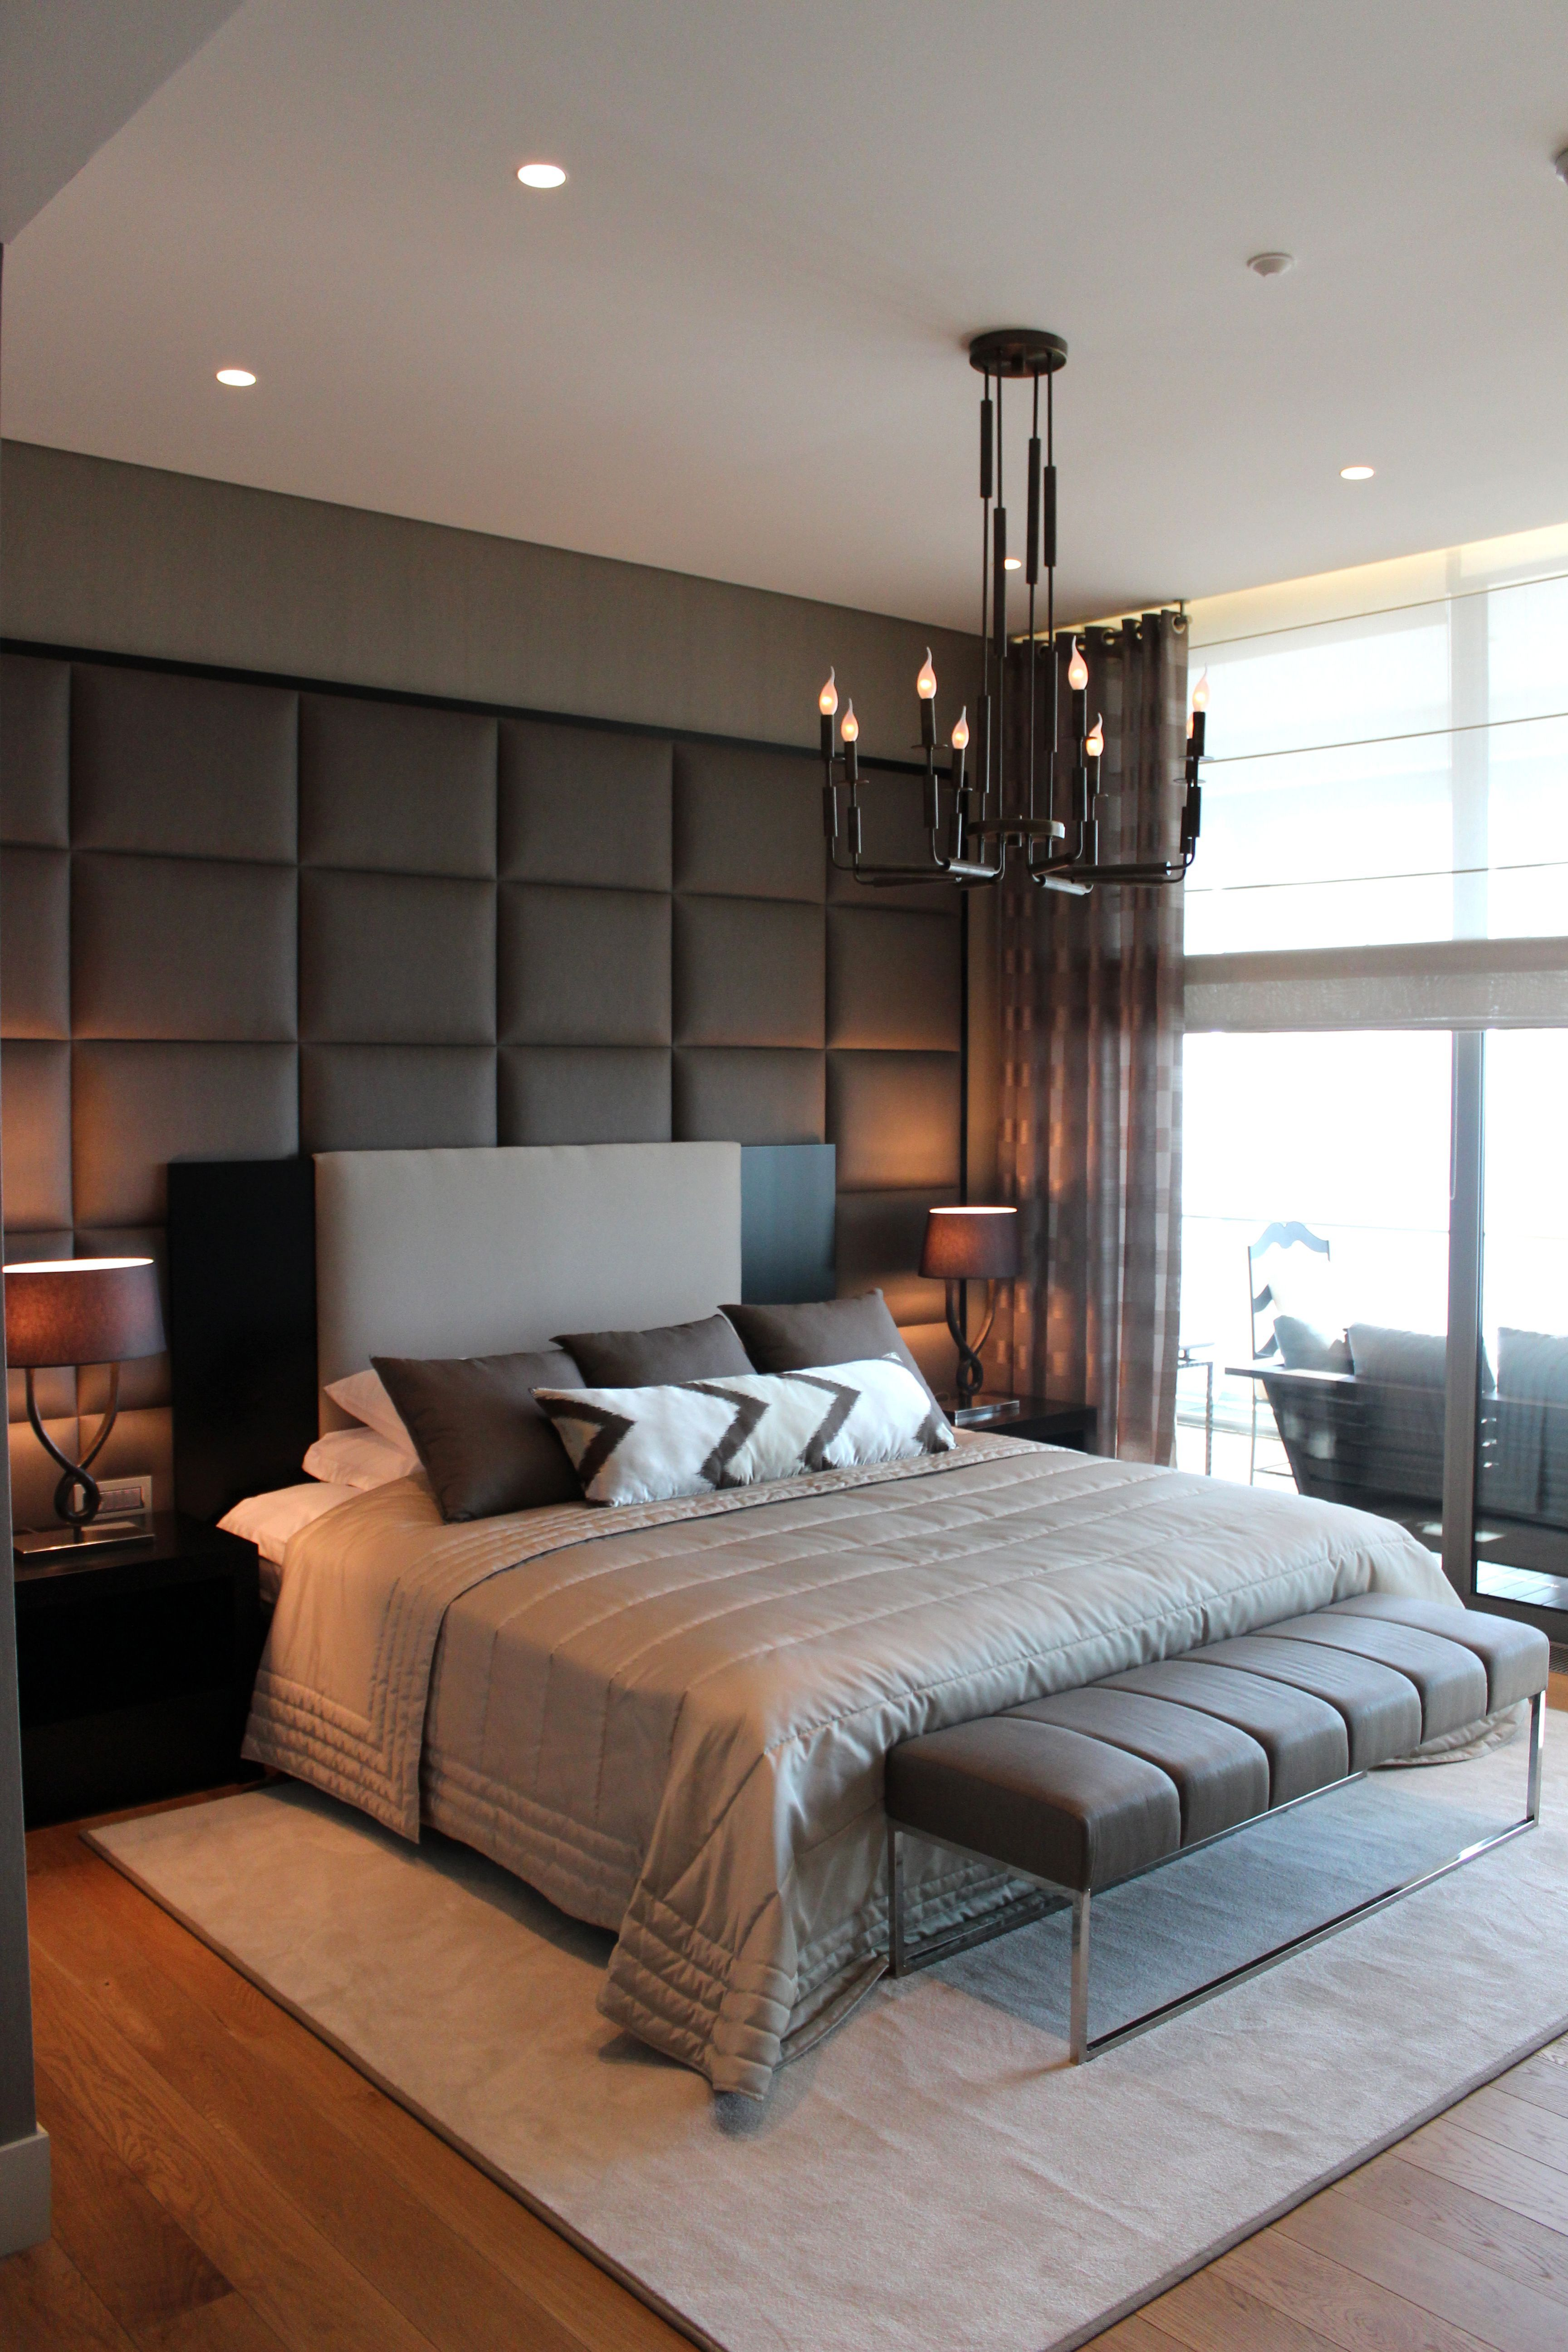 Leather Panelling Accent Wall Can Add Luxurious Character To Your Bedroom Modernbedrooms Luxurious Bedrooms Masculine Bedroom Design Modern Bedroom Design